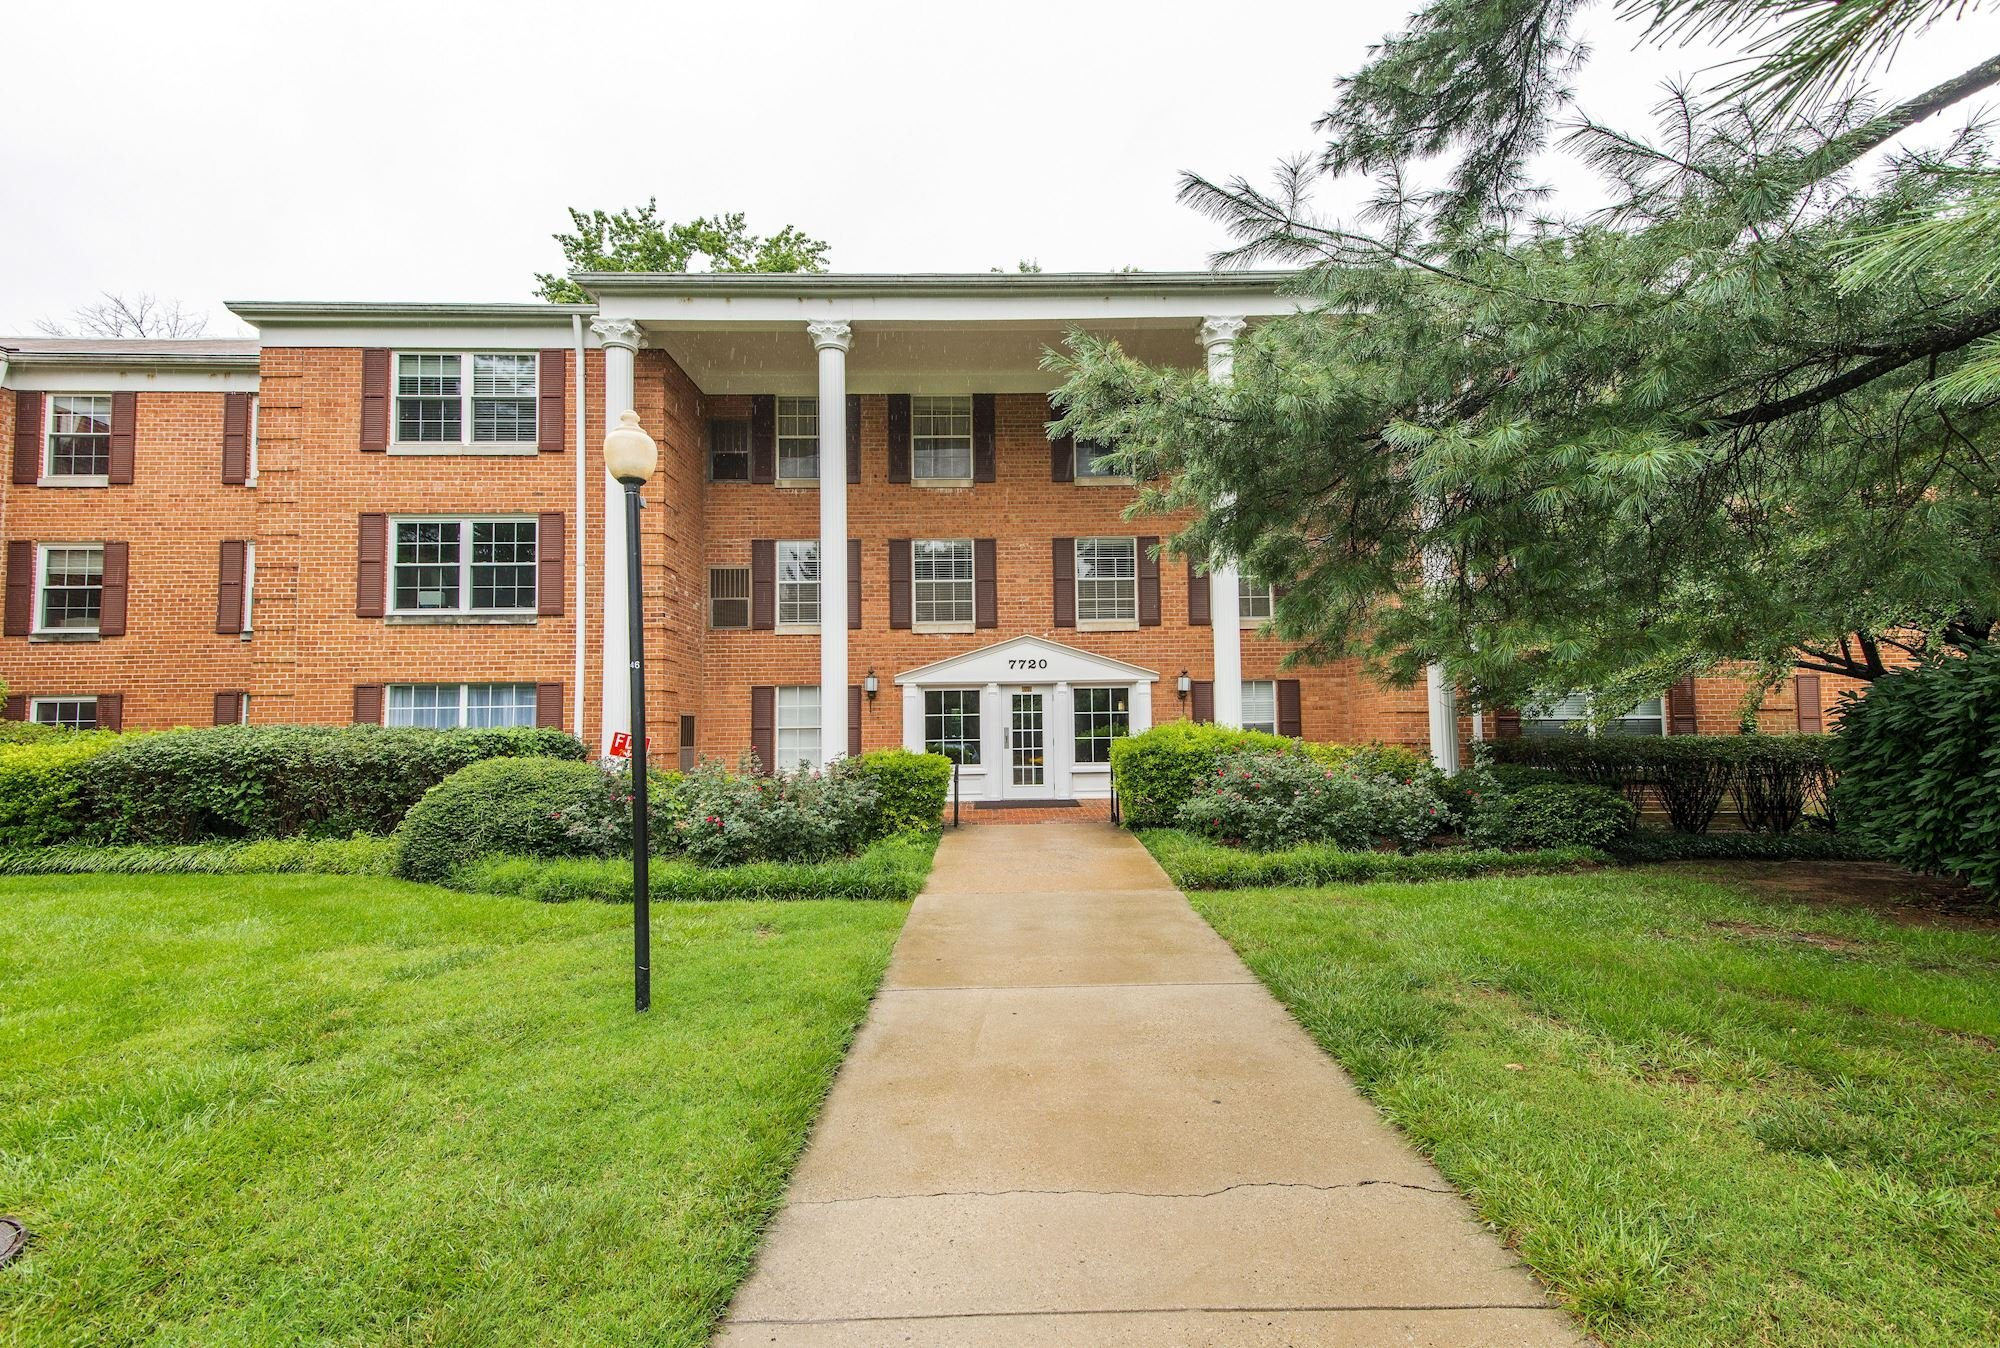 NEW LISTING: 3 BD Renovated Home in Mclean, VA